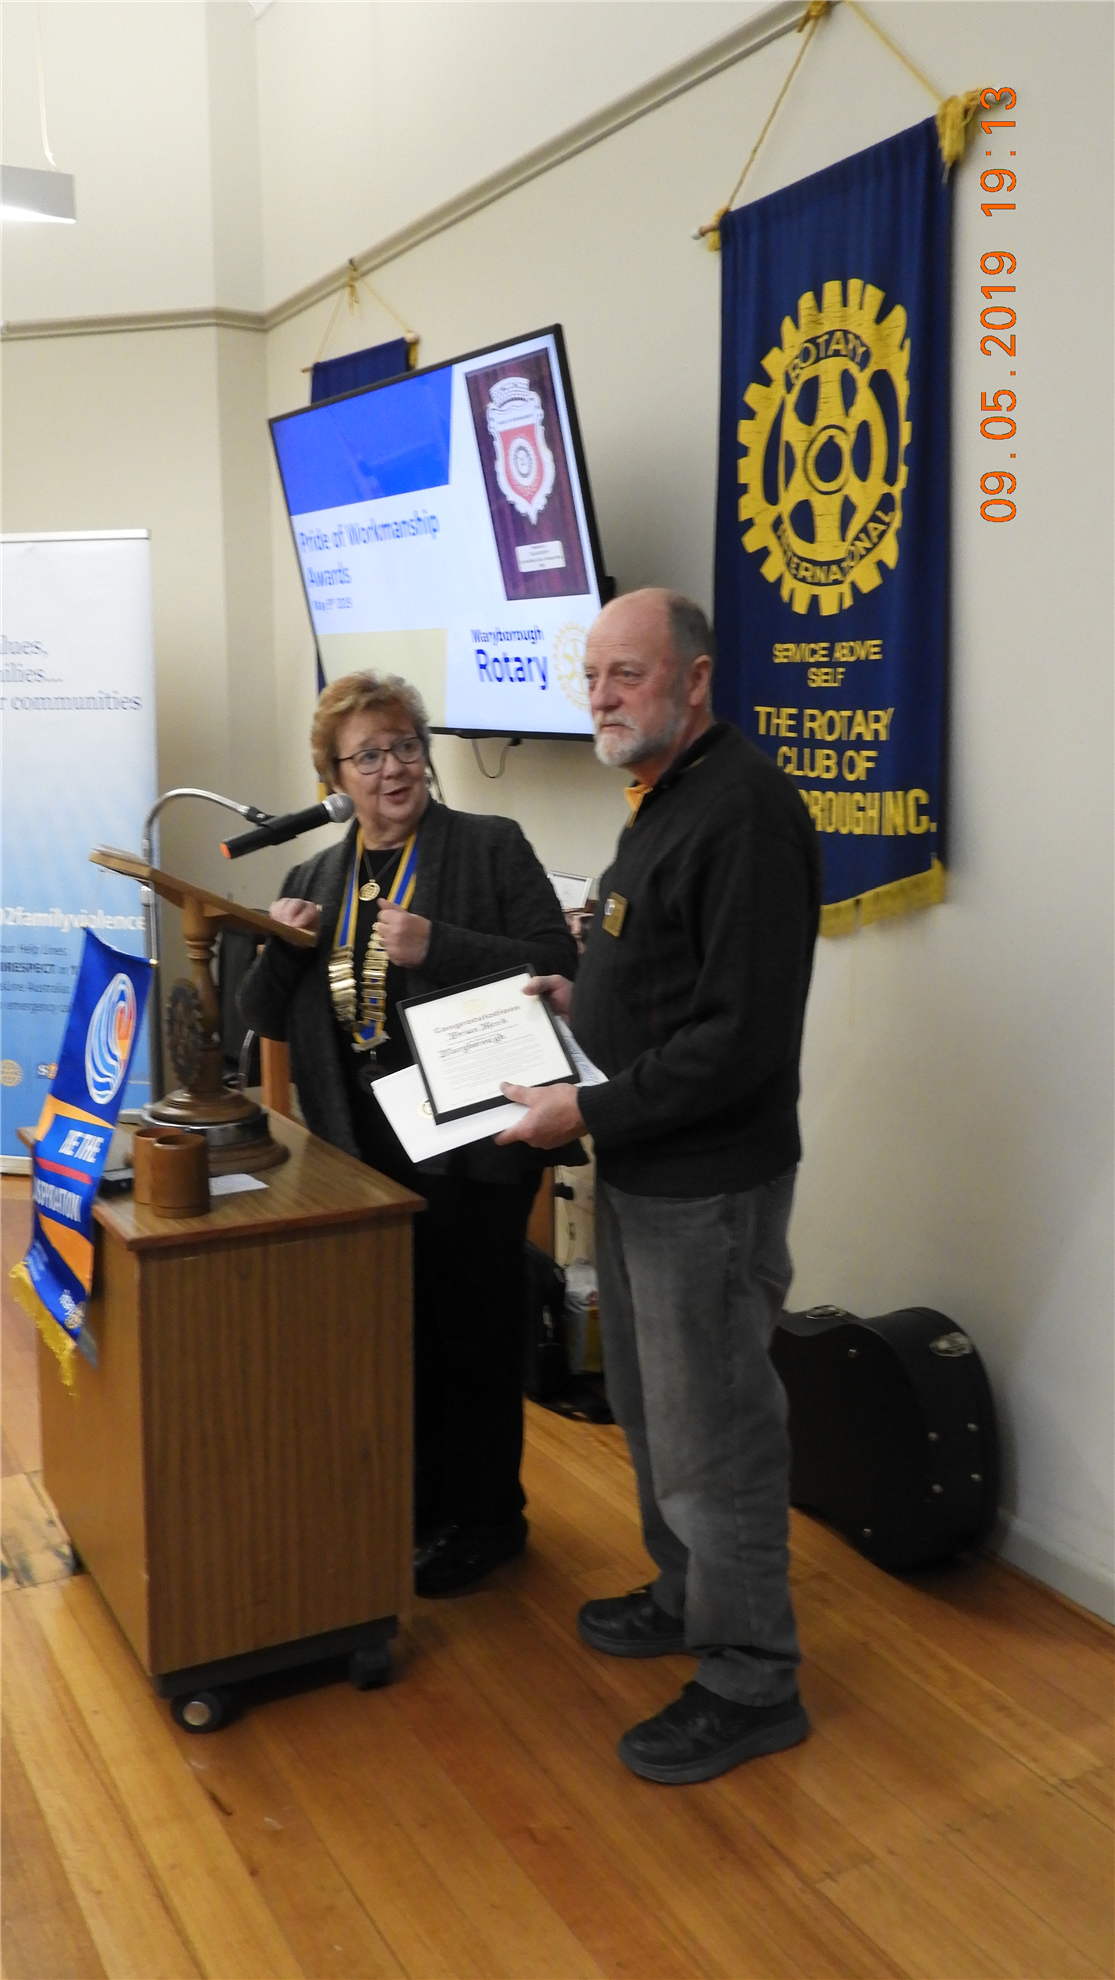 c9744aacebe3 PP Brian Reed was inducted by President Meryl as our newest member last  Thursday. Brian